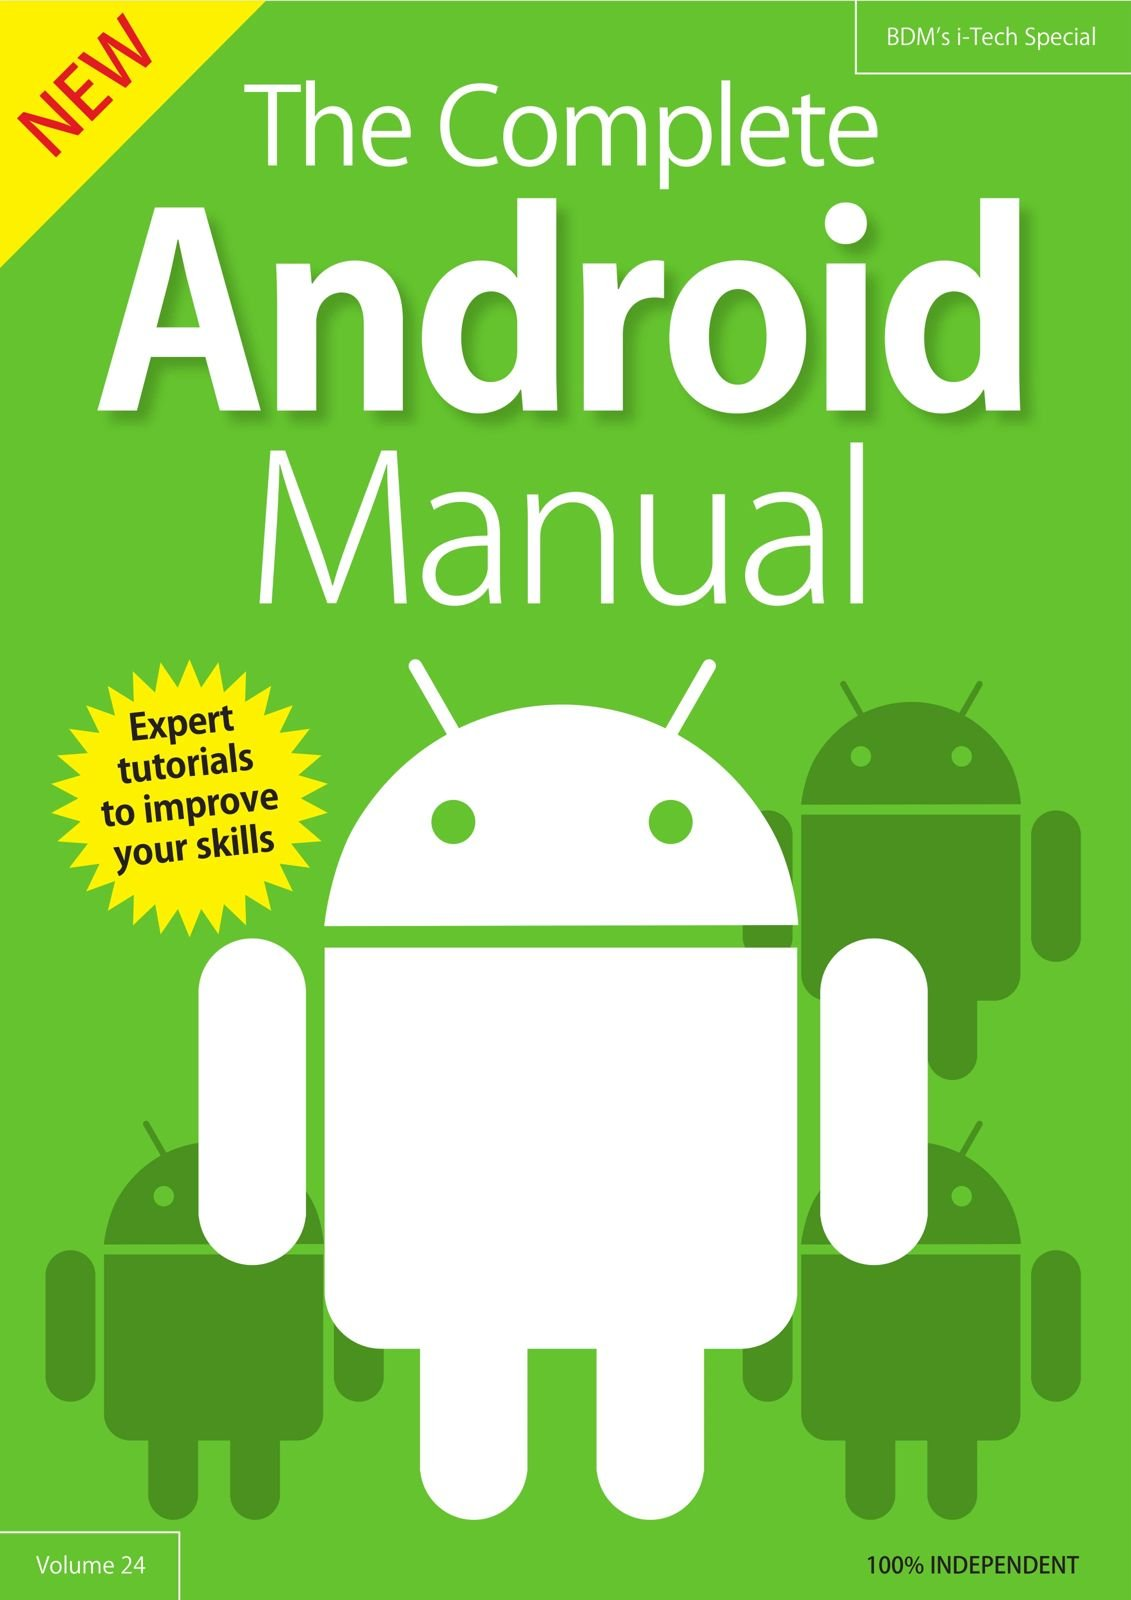 BDM&039;s Series: The Complete Android Manual 2018